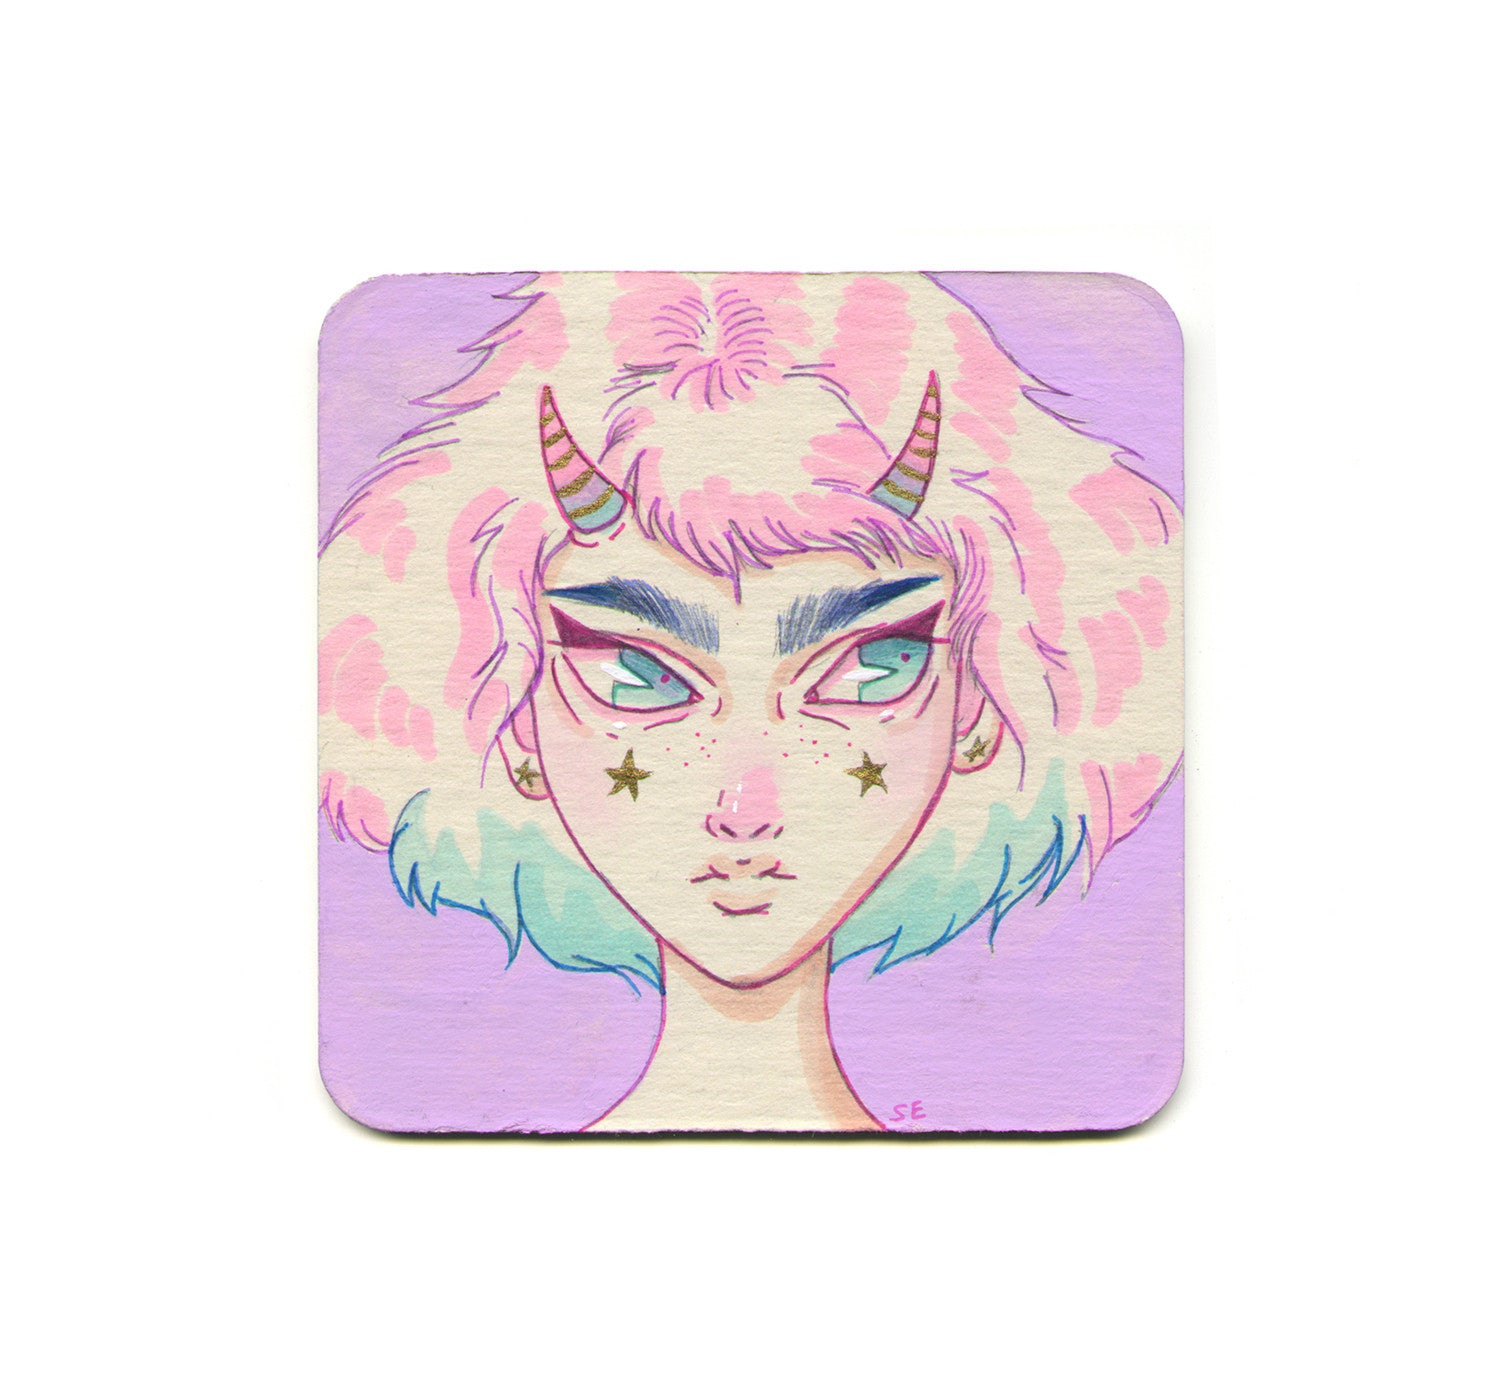 S1 Sabrina Elliott - Star Gazer Coaster